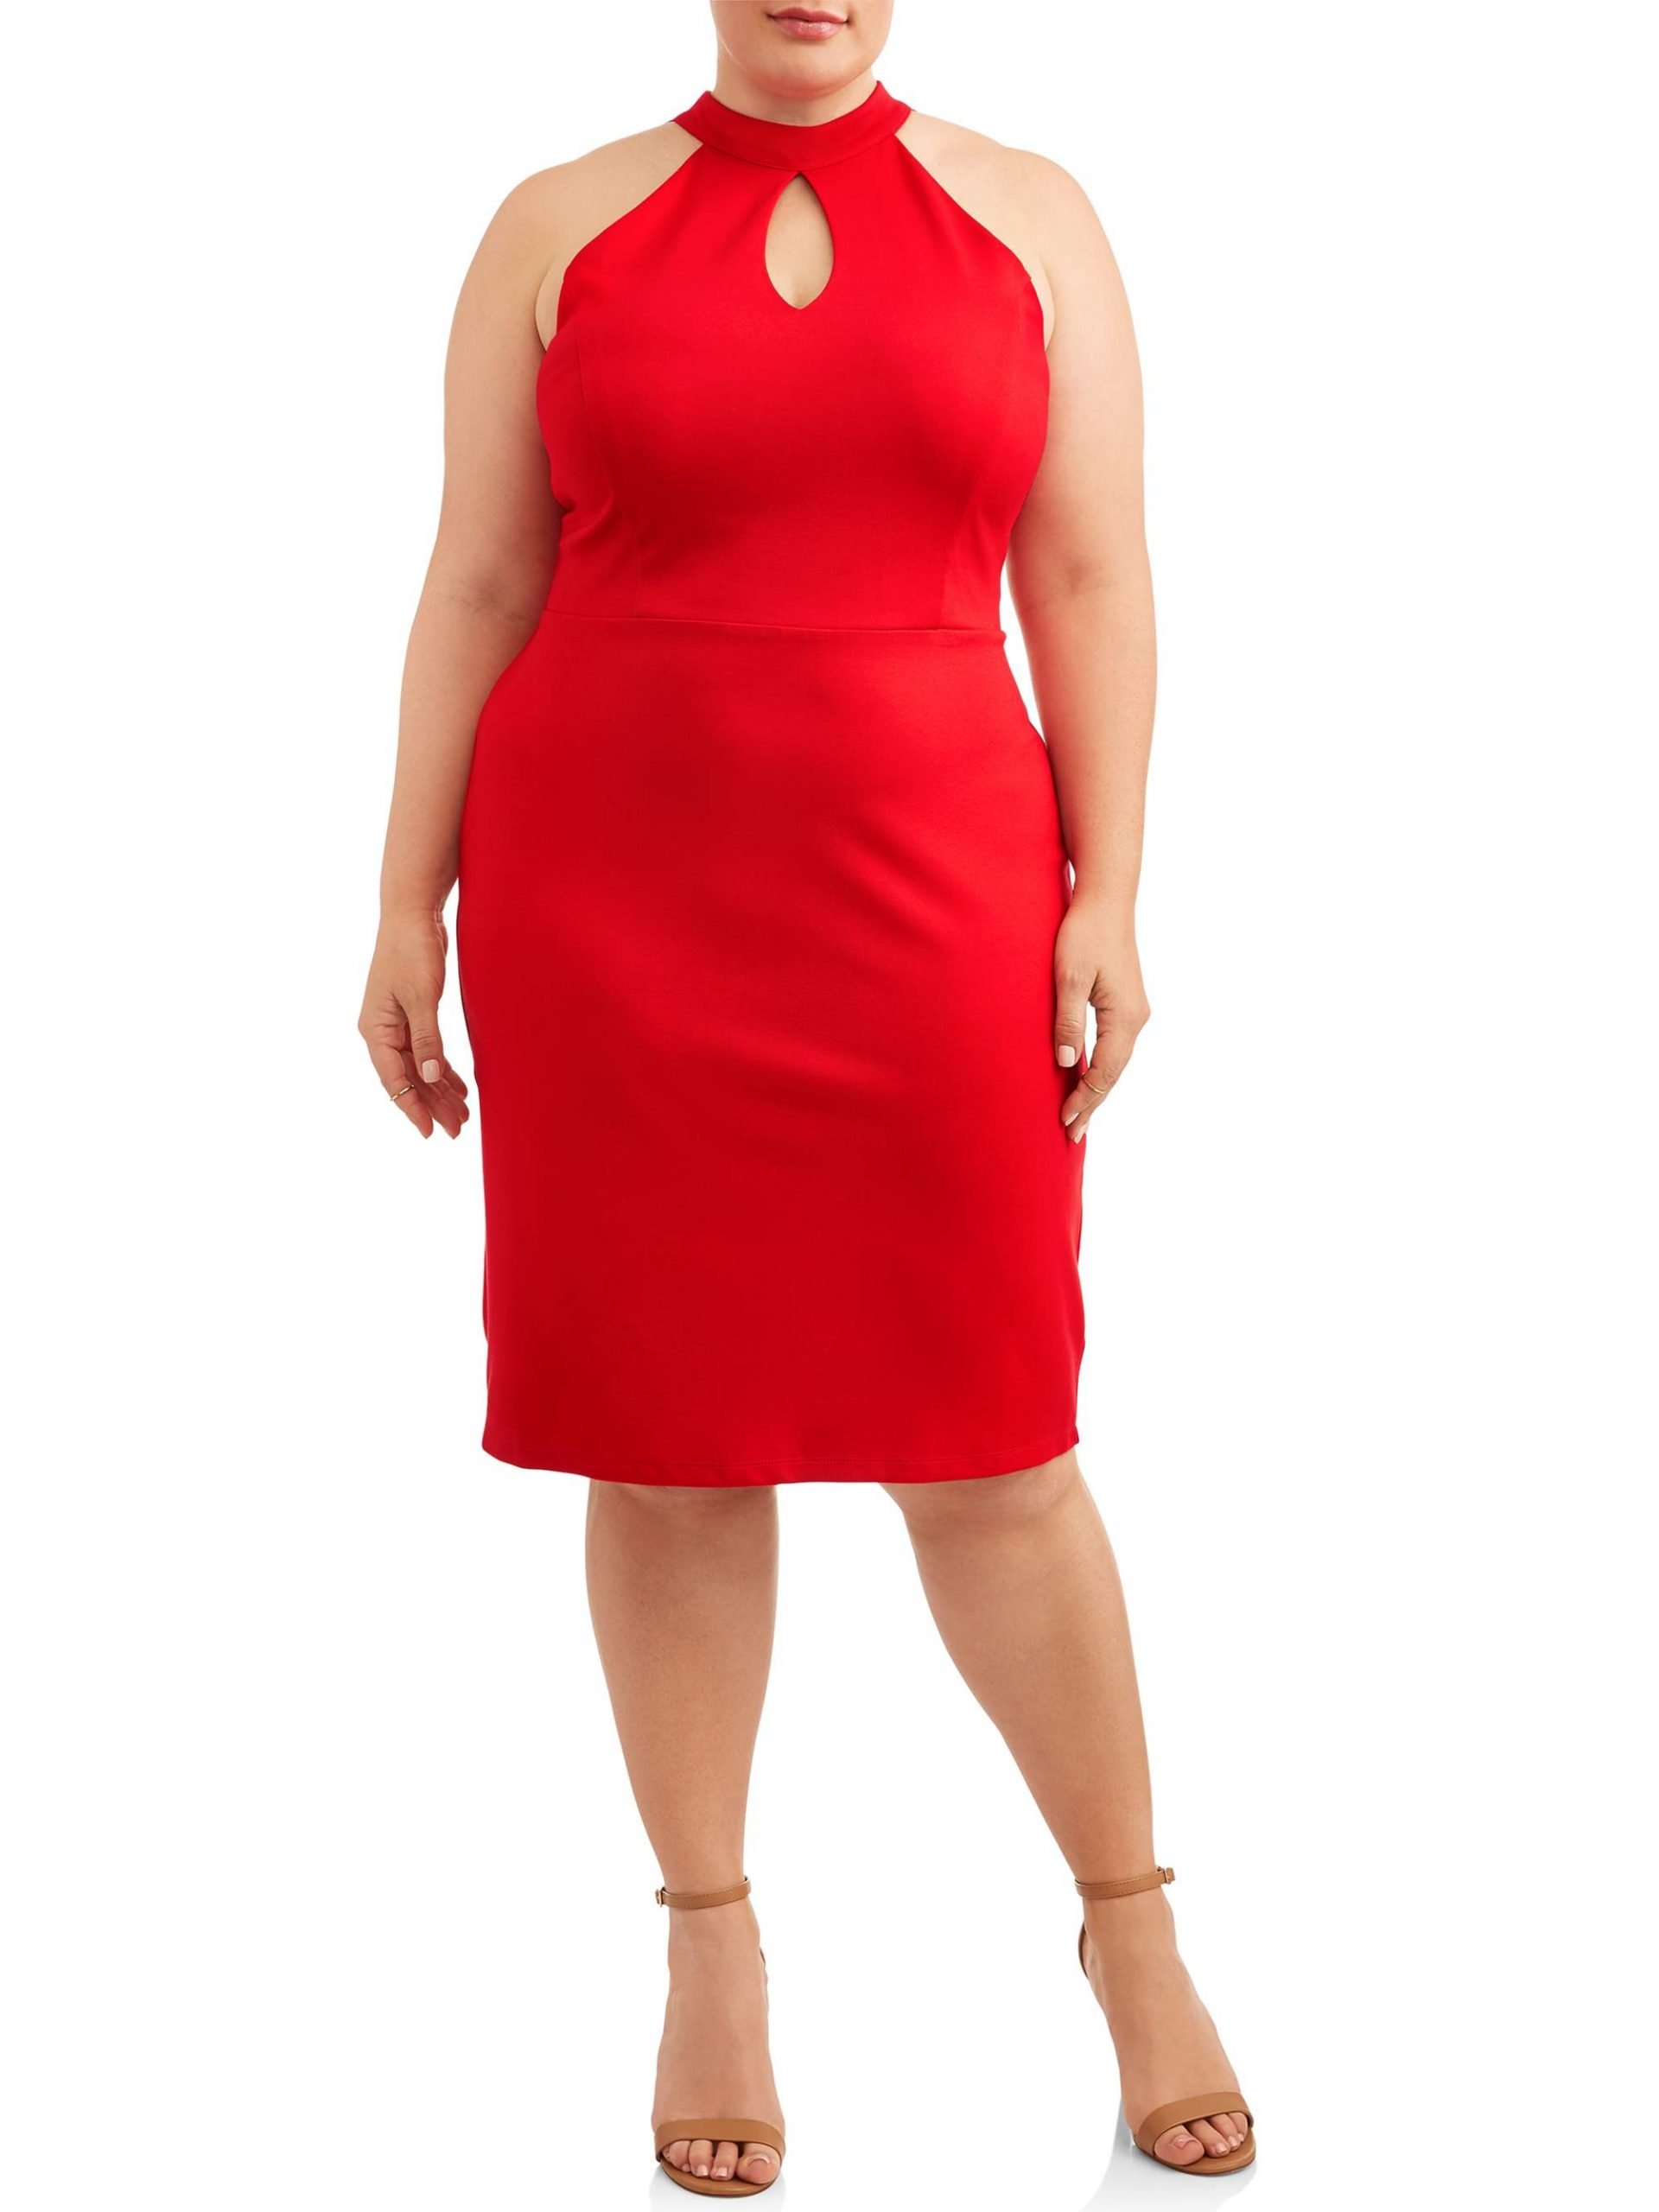 Paperdoll Plus Size Racer Neck Dress with Keyhole